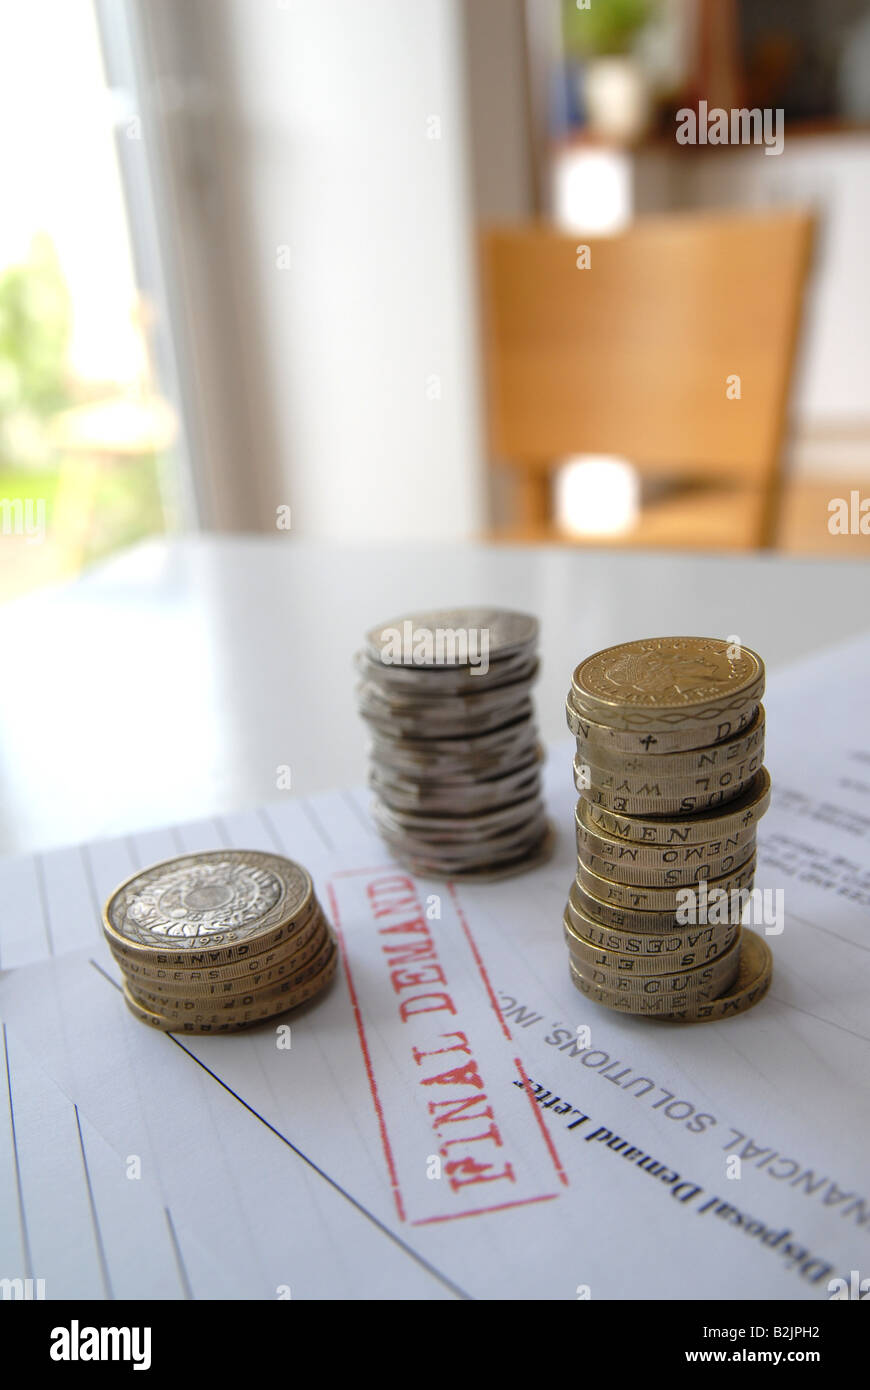 A stack of coins being counted, trying to pay the bills / final demand / reminder / red bill. - Stock Image